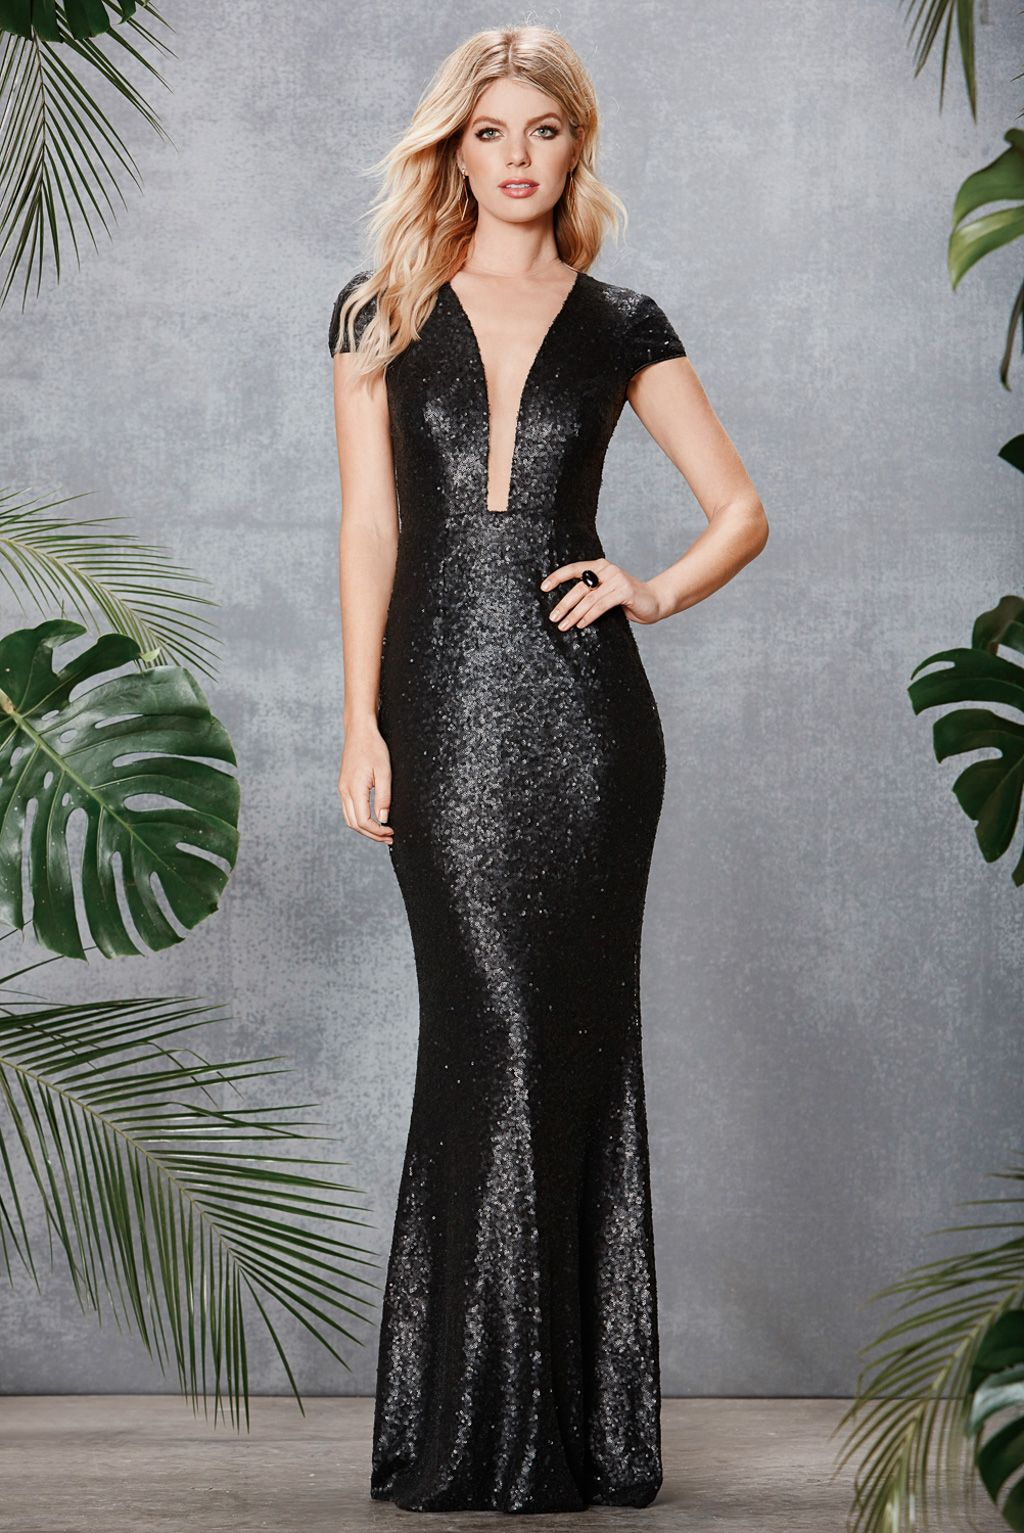 Michelle Sequin Mermaid Gown   SUCCESS! (Want accomplished ... 3bc1953ec1b1